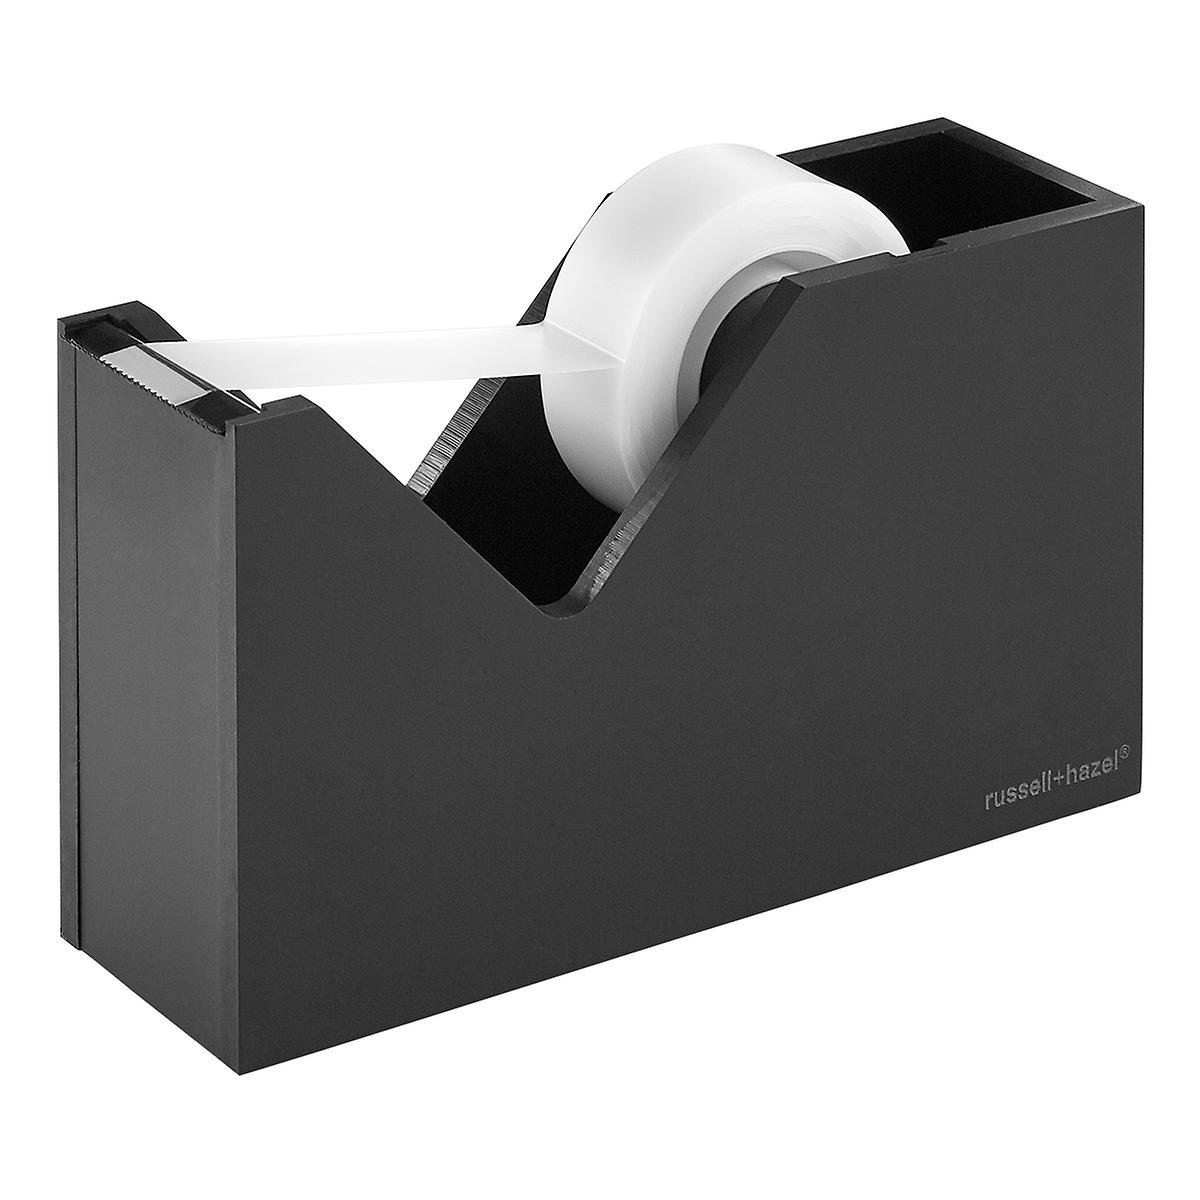 Russell Hazel Acrylic Matte Black Tape Dispenser